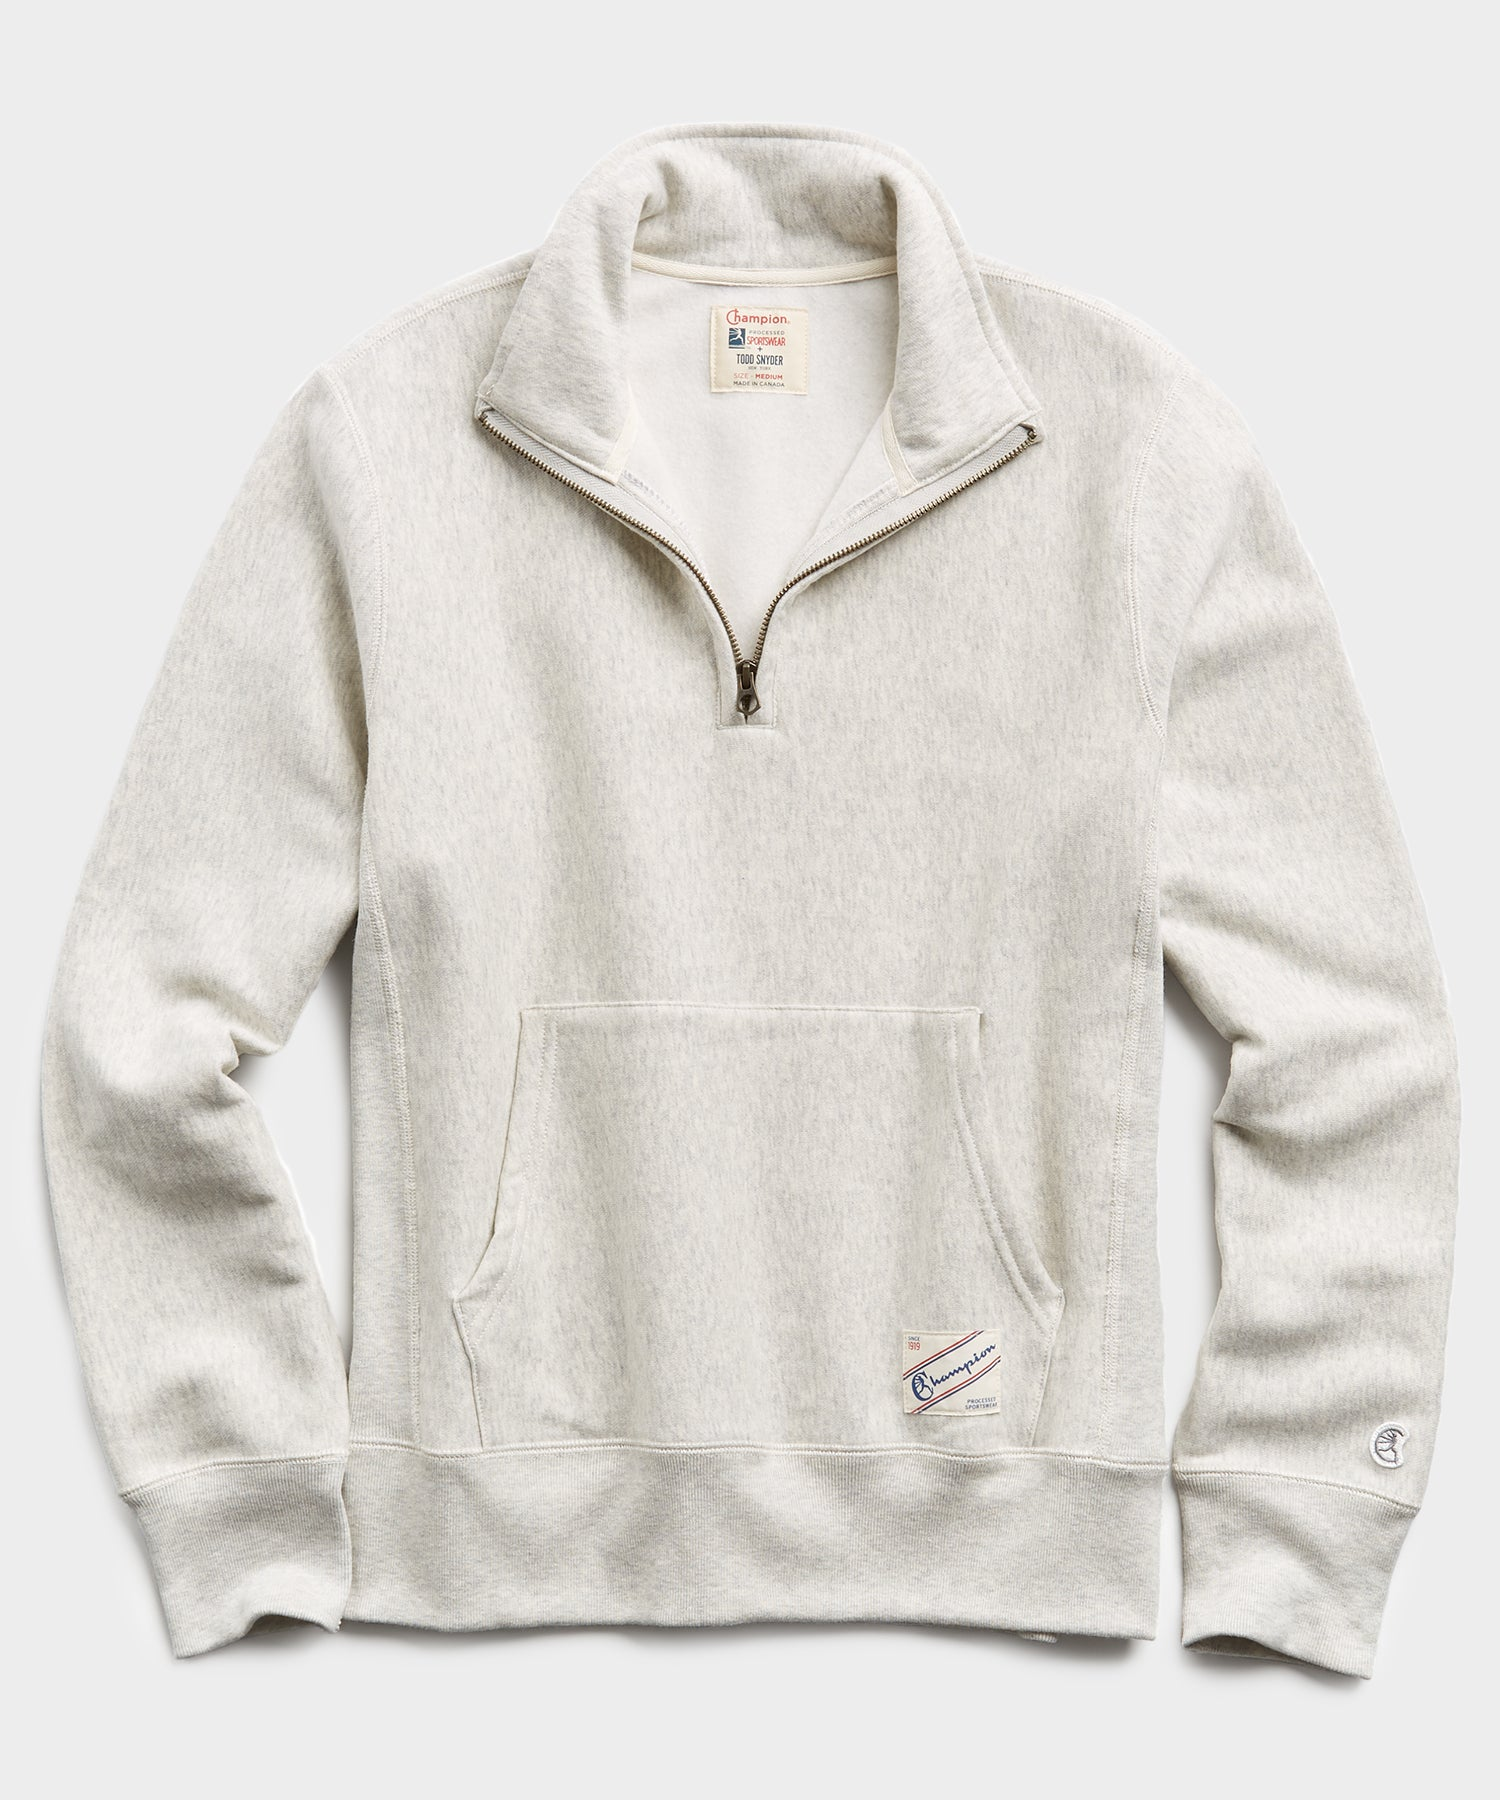 Heavyweight Quarter Zip Sweatshirt in Eggshell Mix